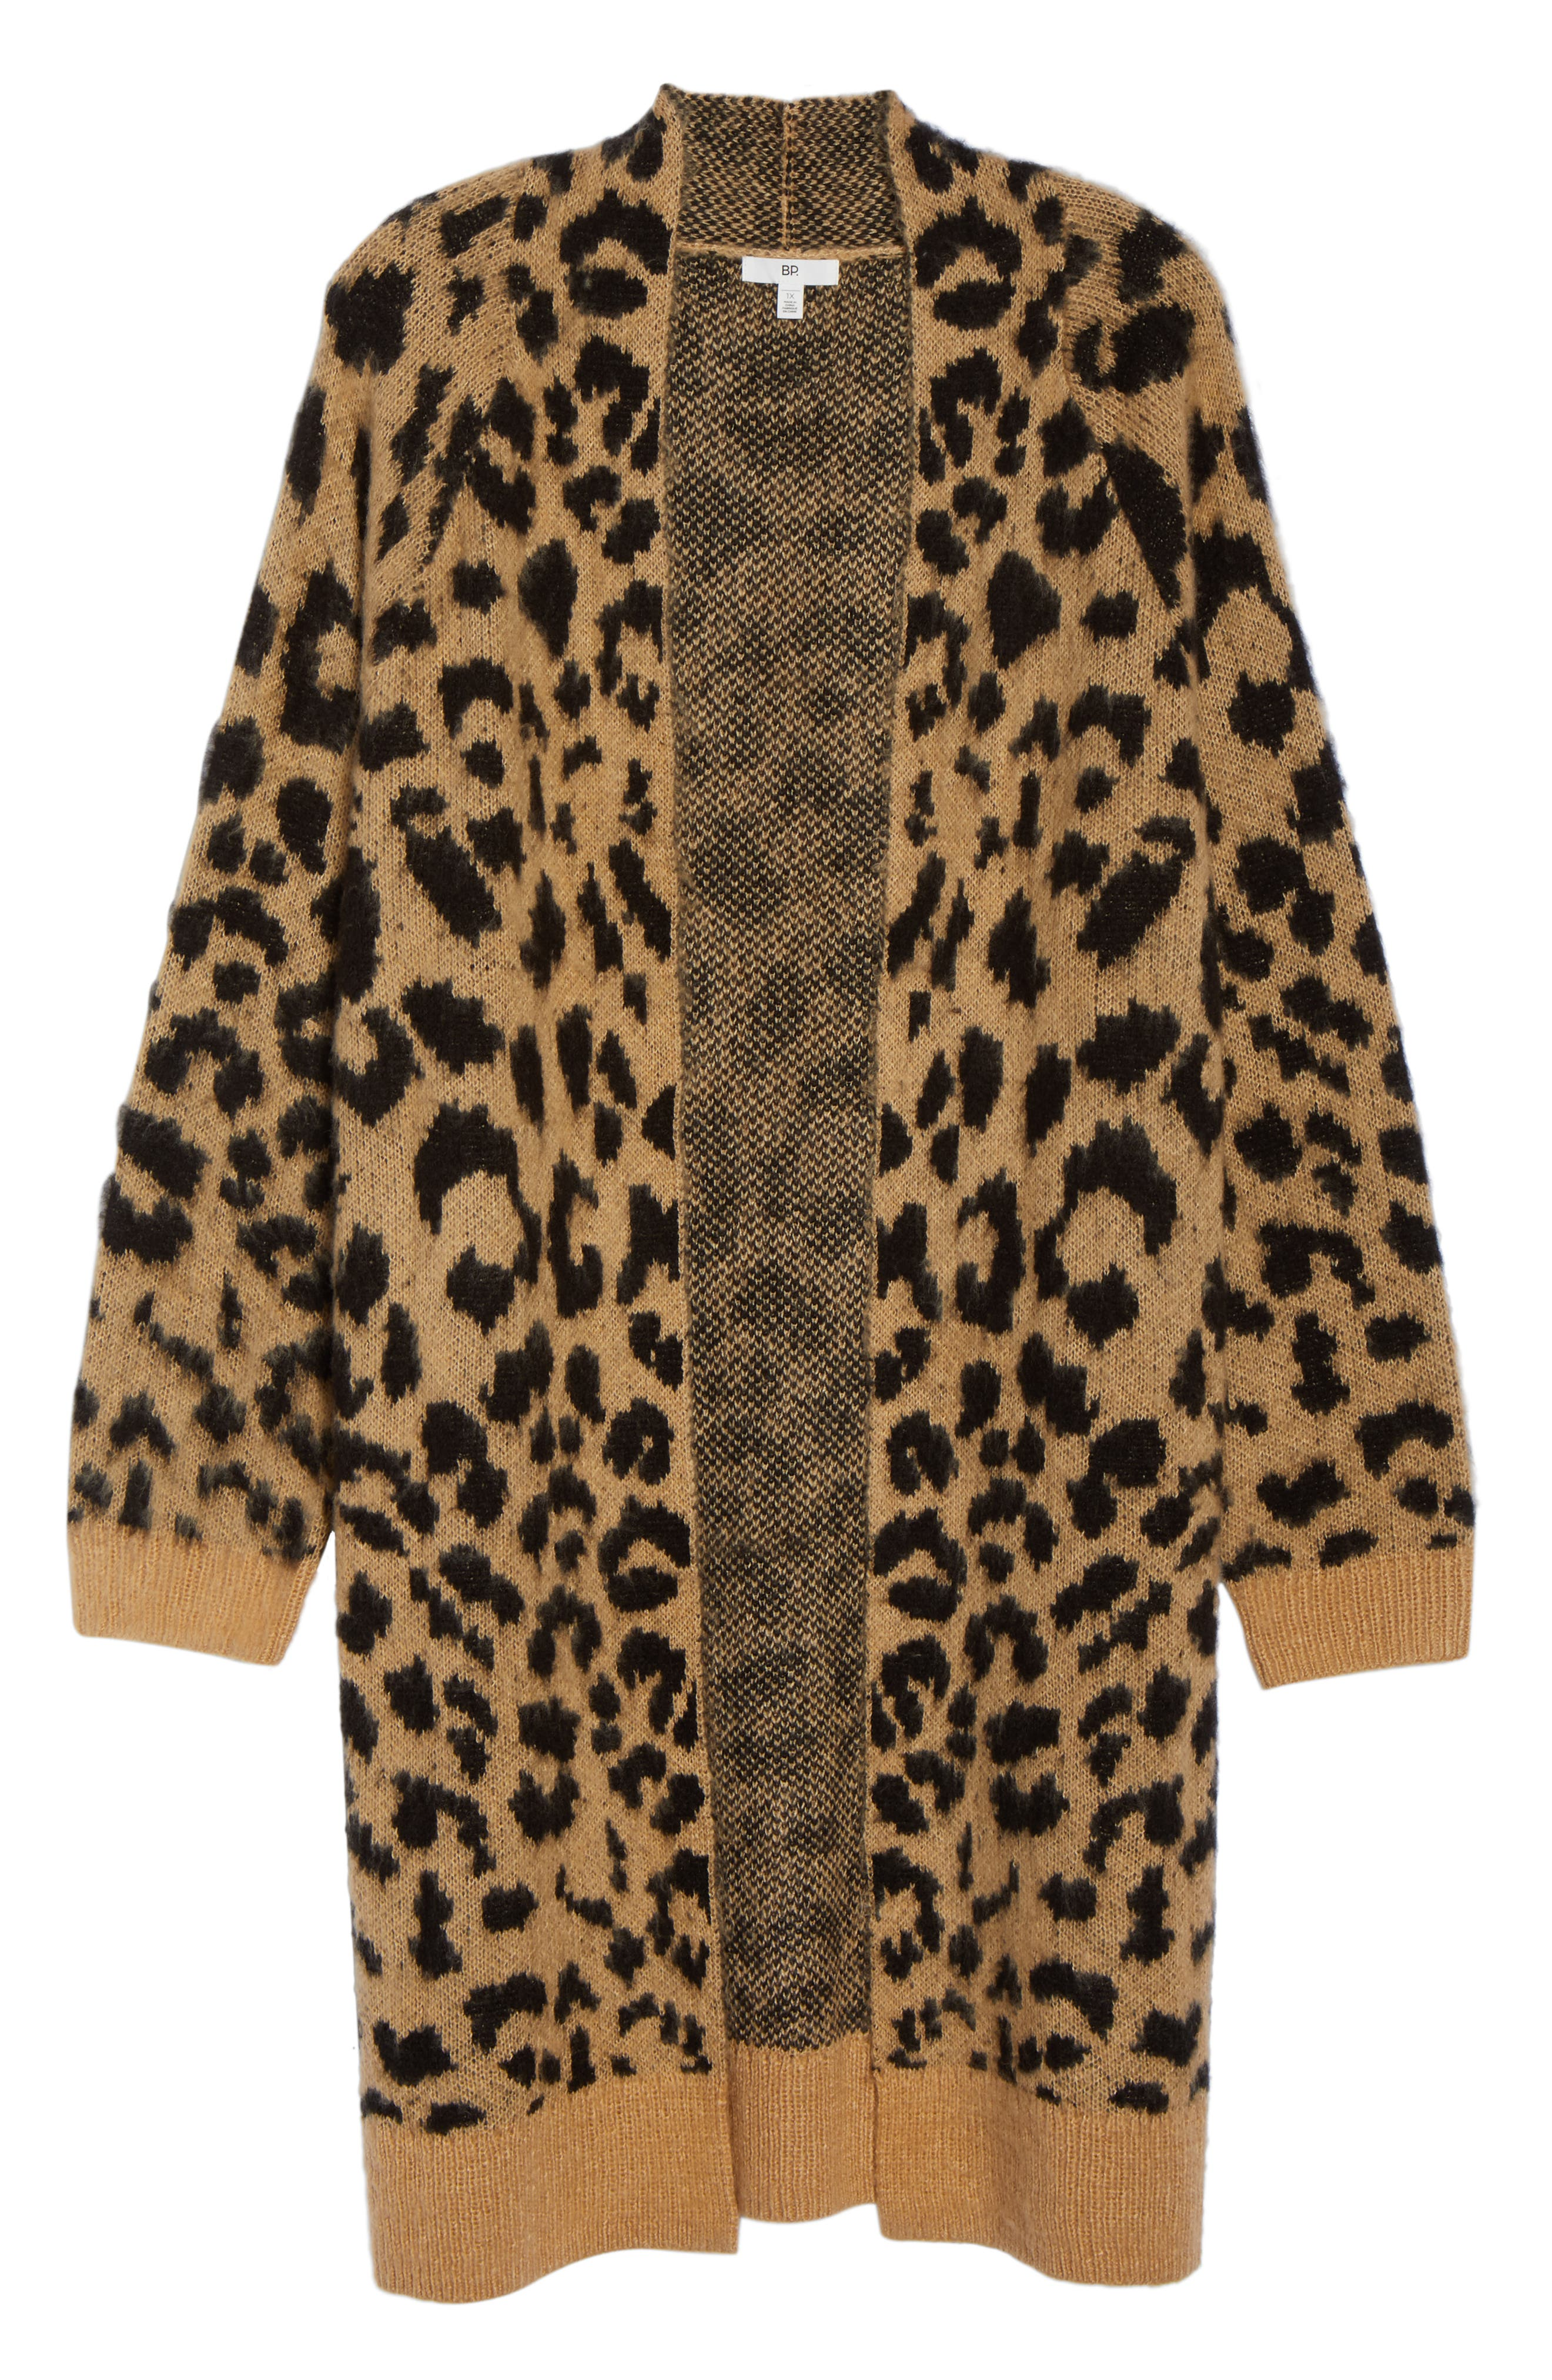 Long Leopard Jacquard Cardigan,                             Alternate thumbnail 11, color,                             260